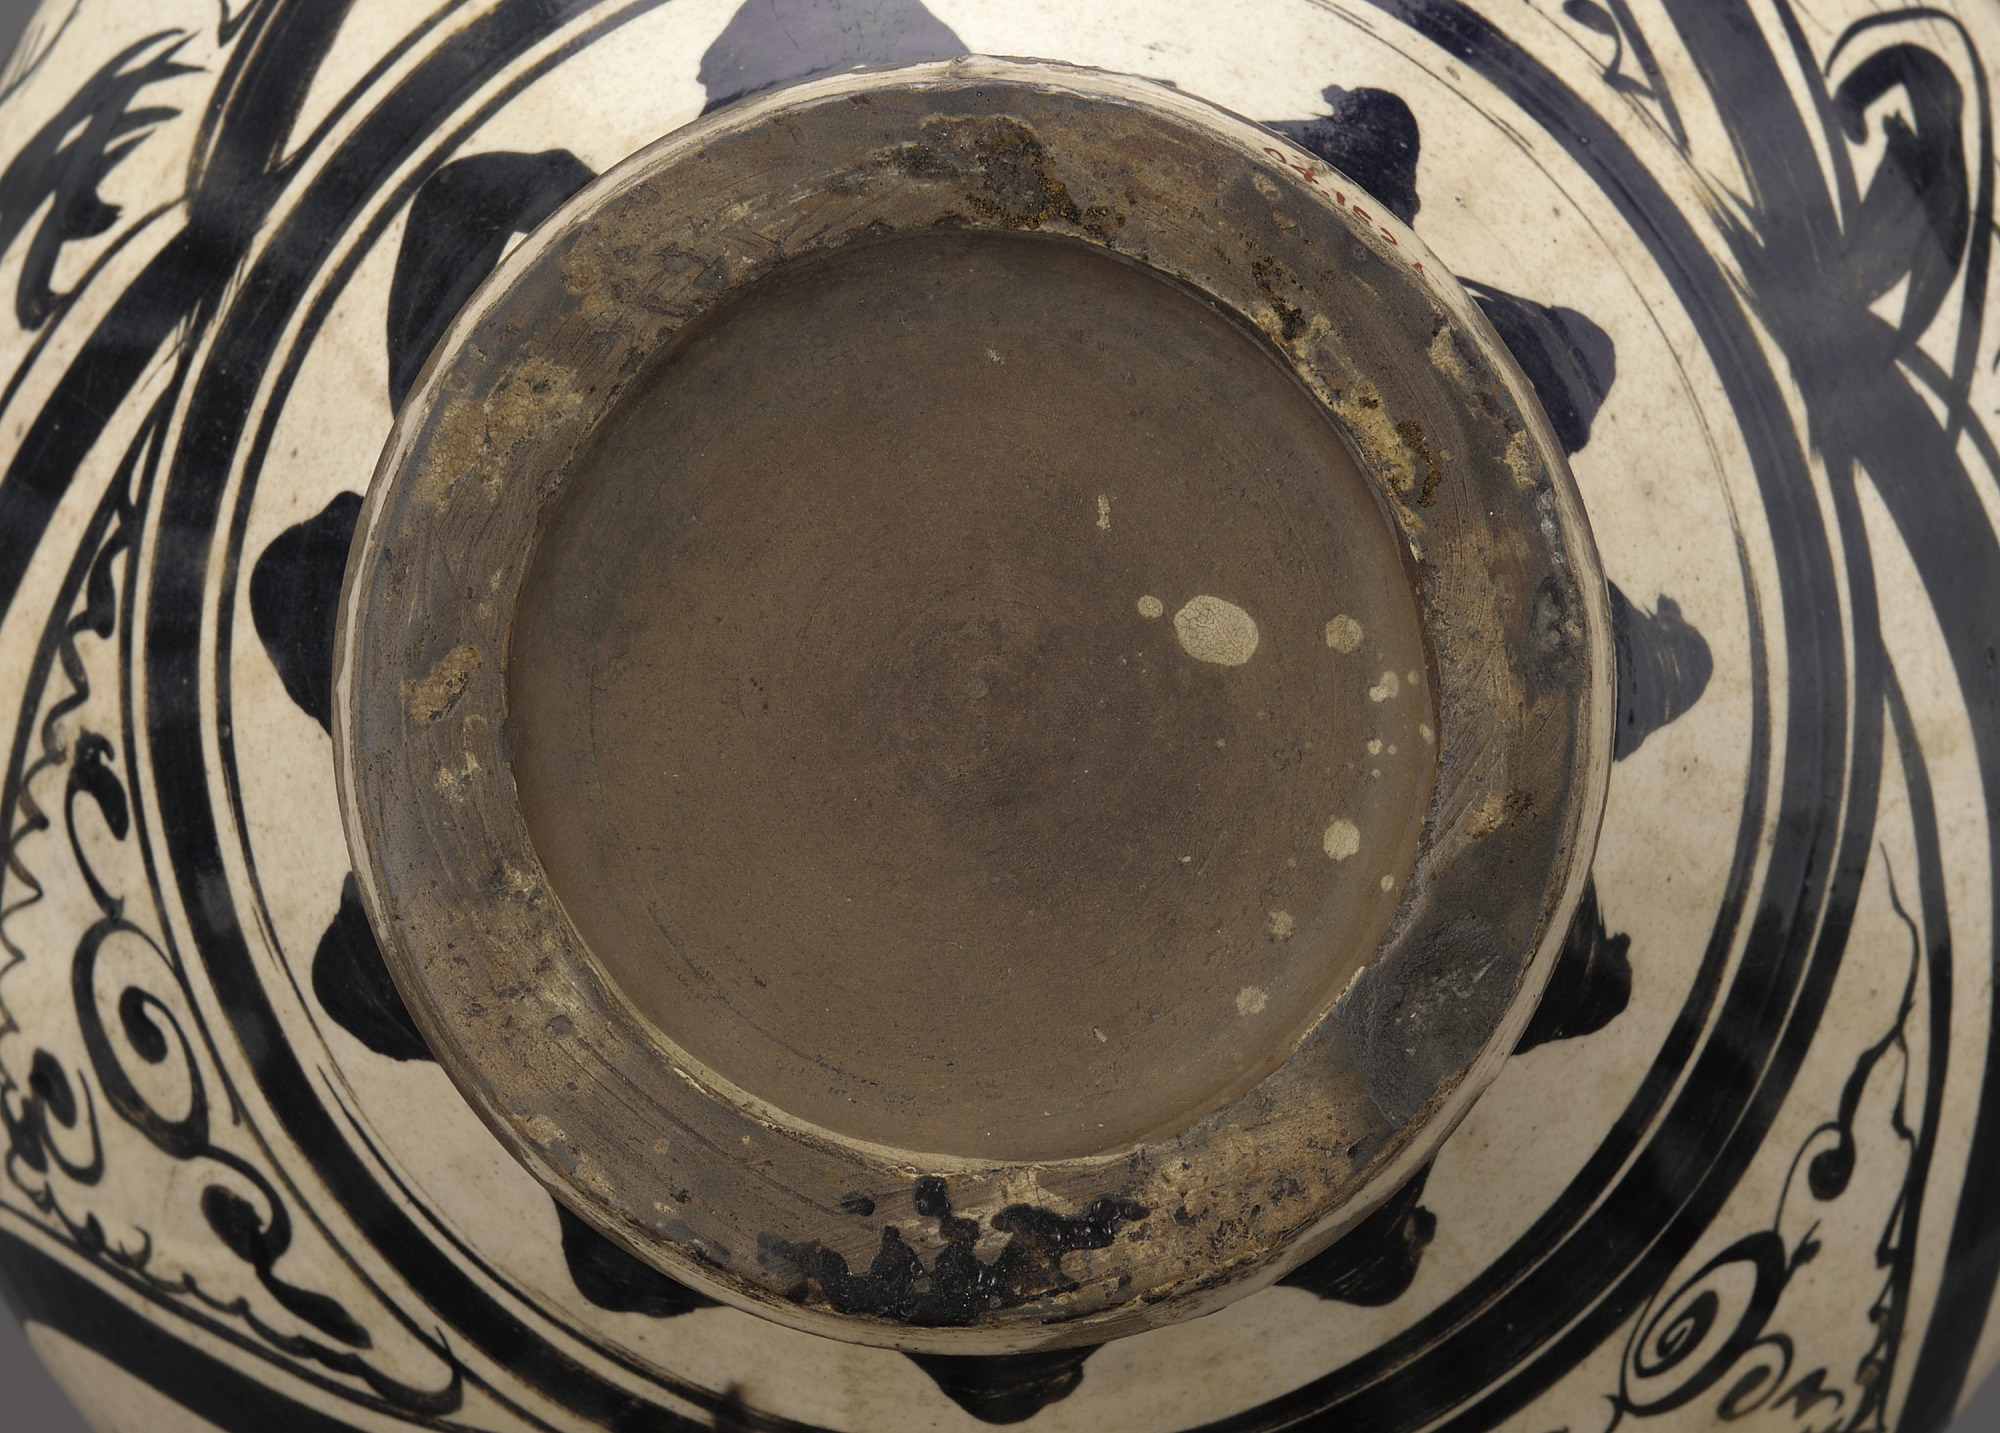 base: Cizhou or Cizhou-type ware wine jar